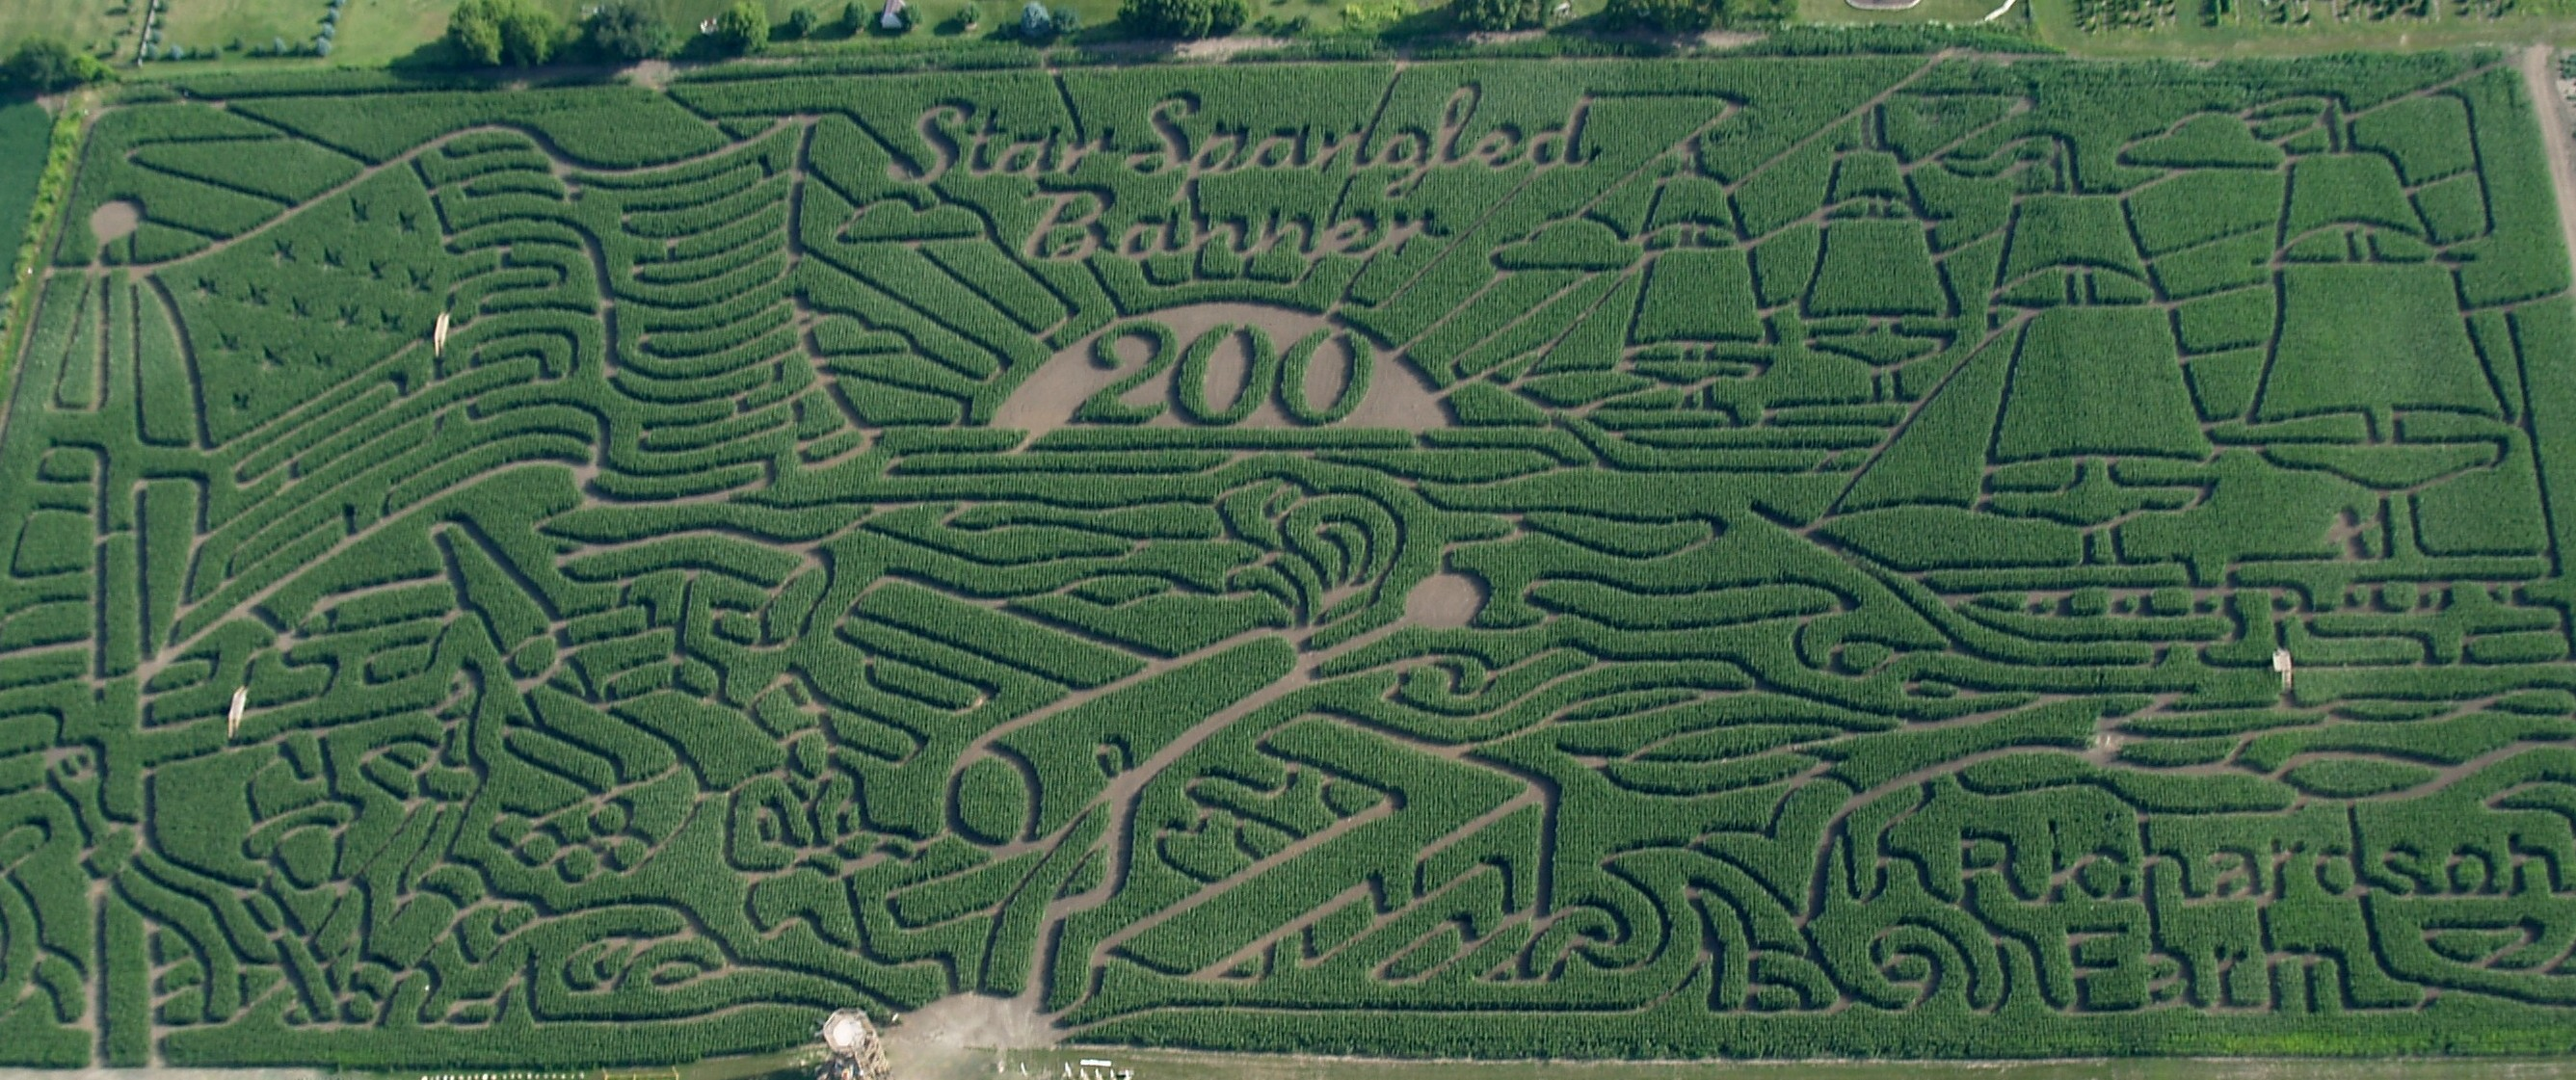 2014 Corn Maze - 200th Anniversary of the Start Spangled Banner